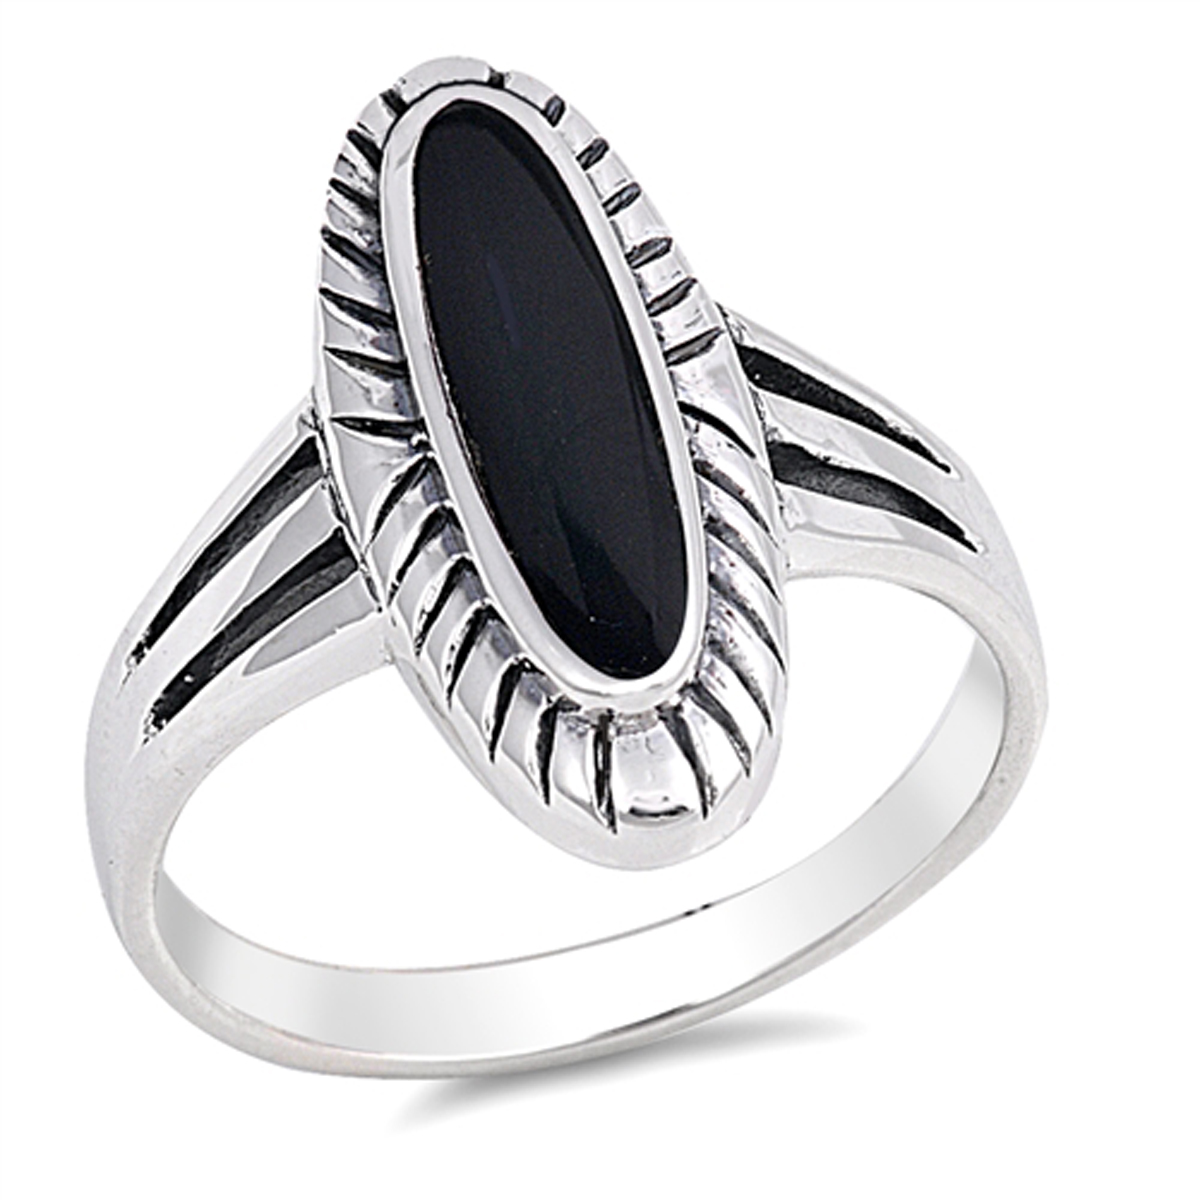 Sterling Silver Women's Simulated Black Onyx Wide Oval Ring (Sizes 6-12) (Ring Size 6)